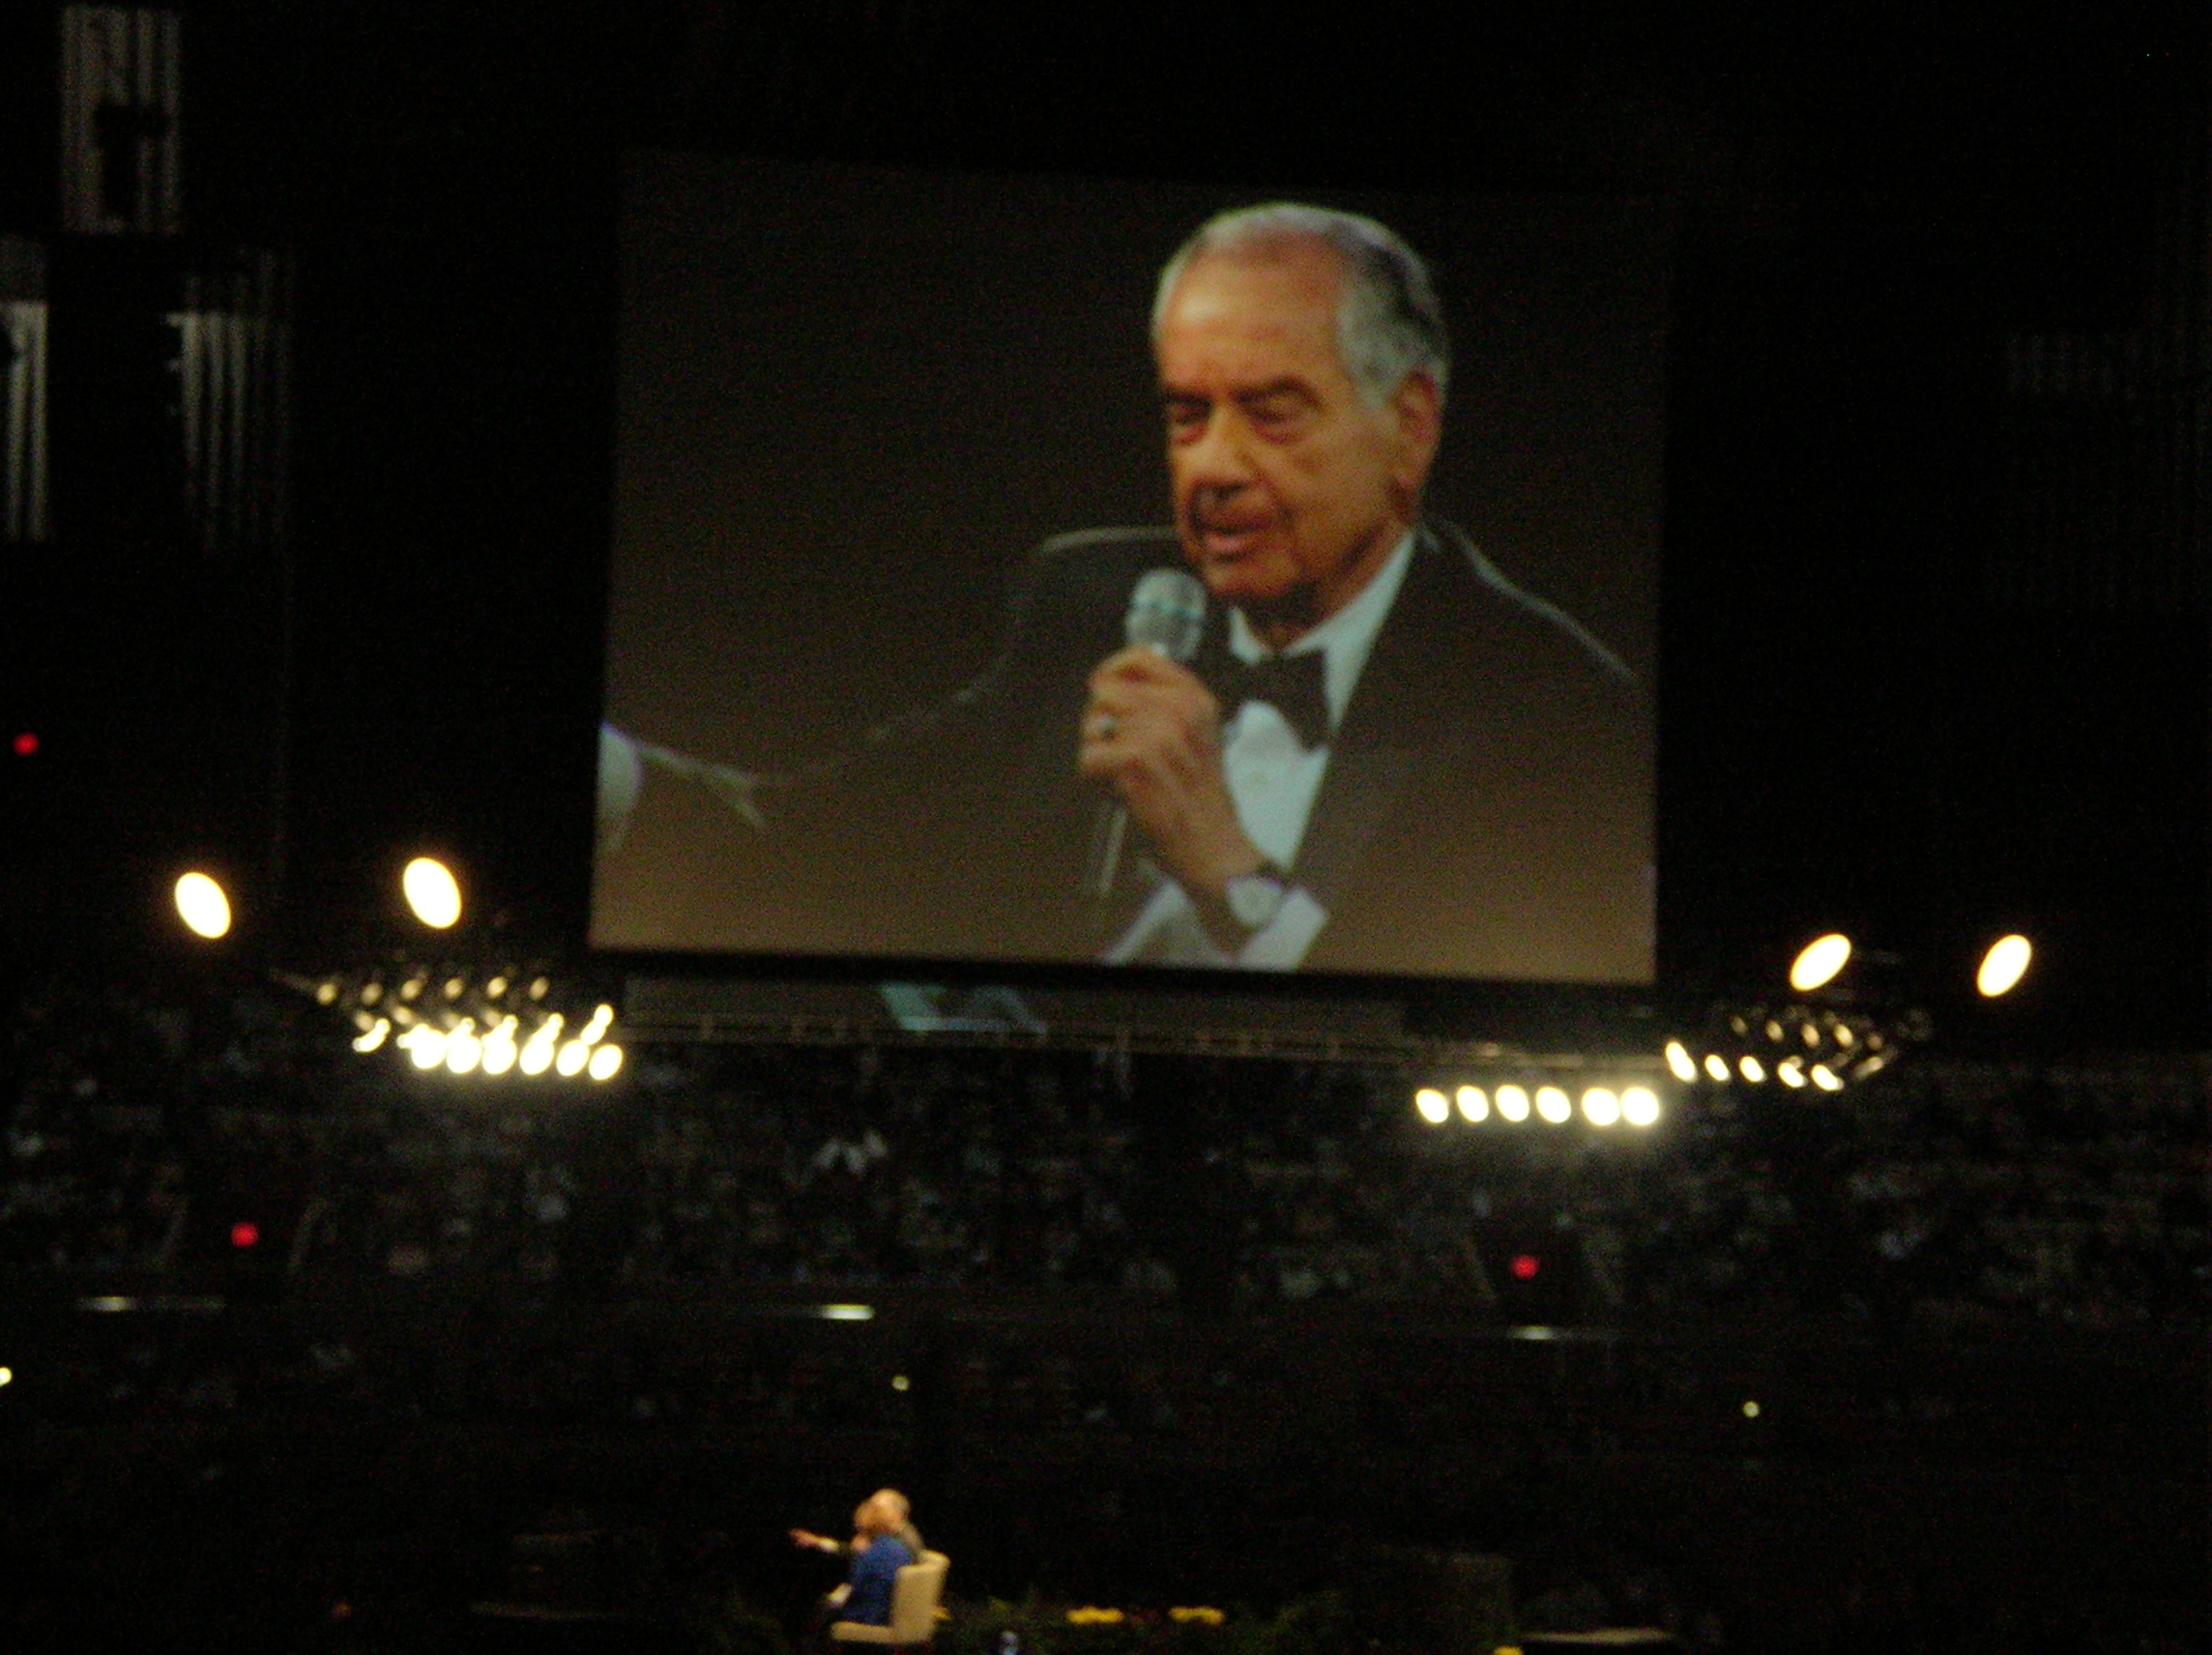 Zig_Ziglar_at_Get_Motivated_Seminar,_Cow_Palace_2009-3-24_2